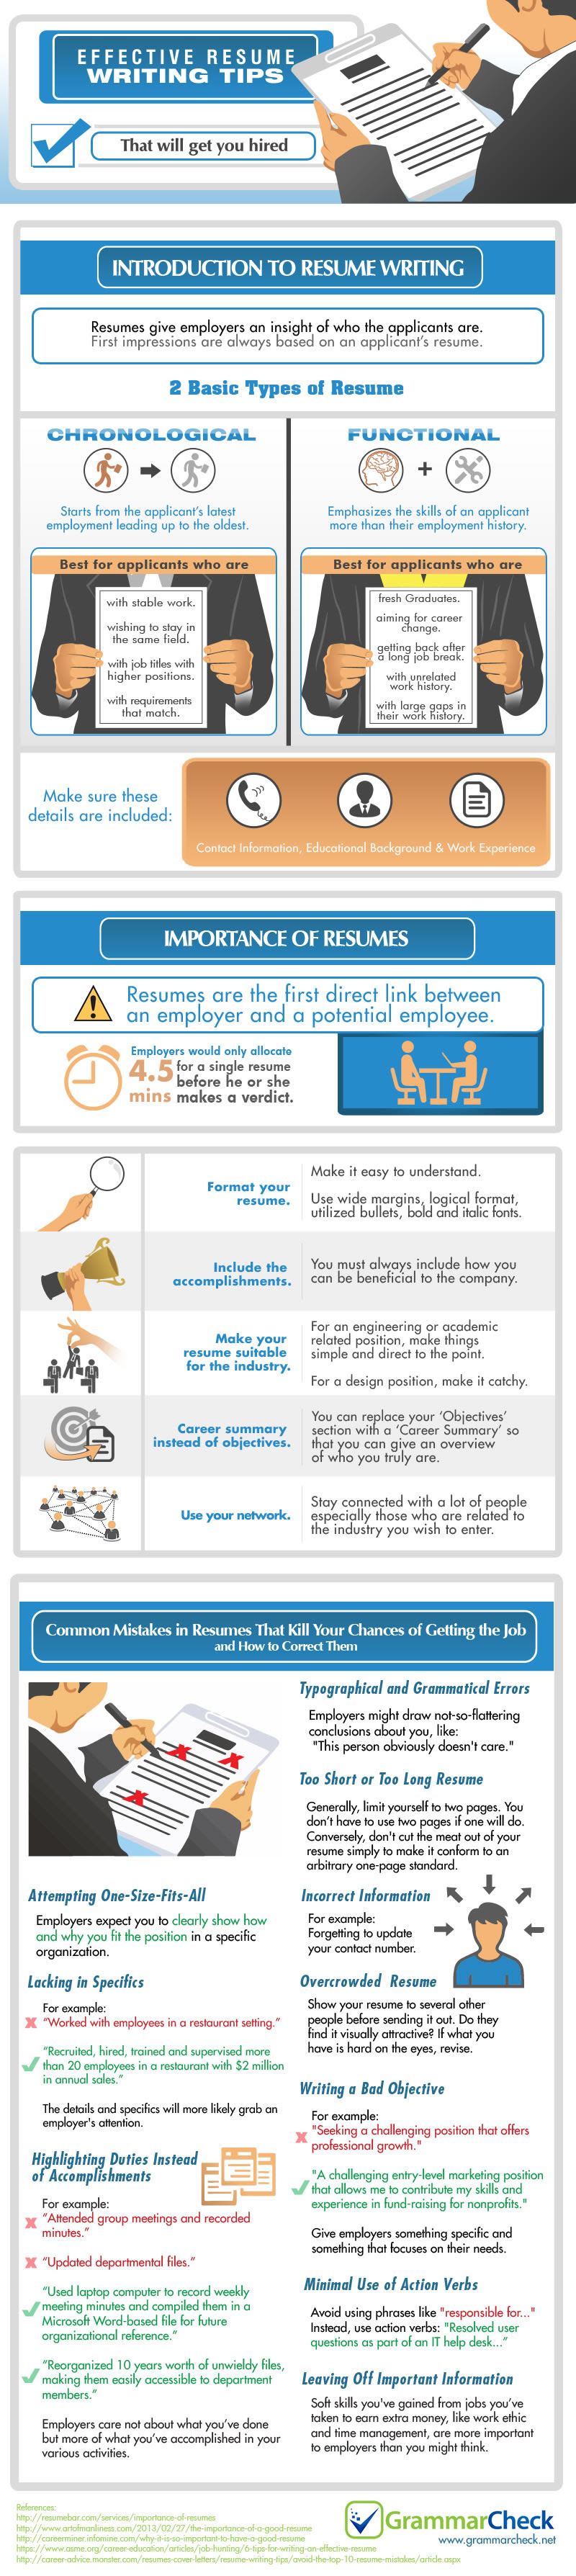 Effective Resume Writing Tips (Infographic)